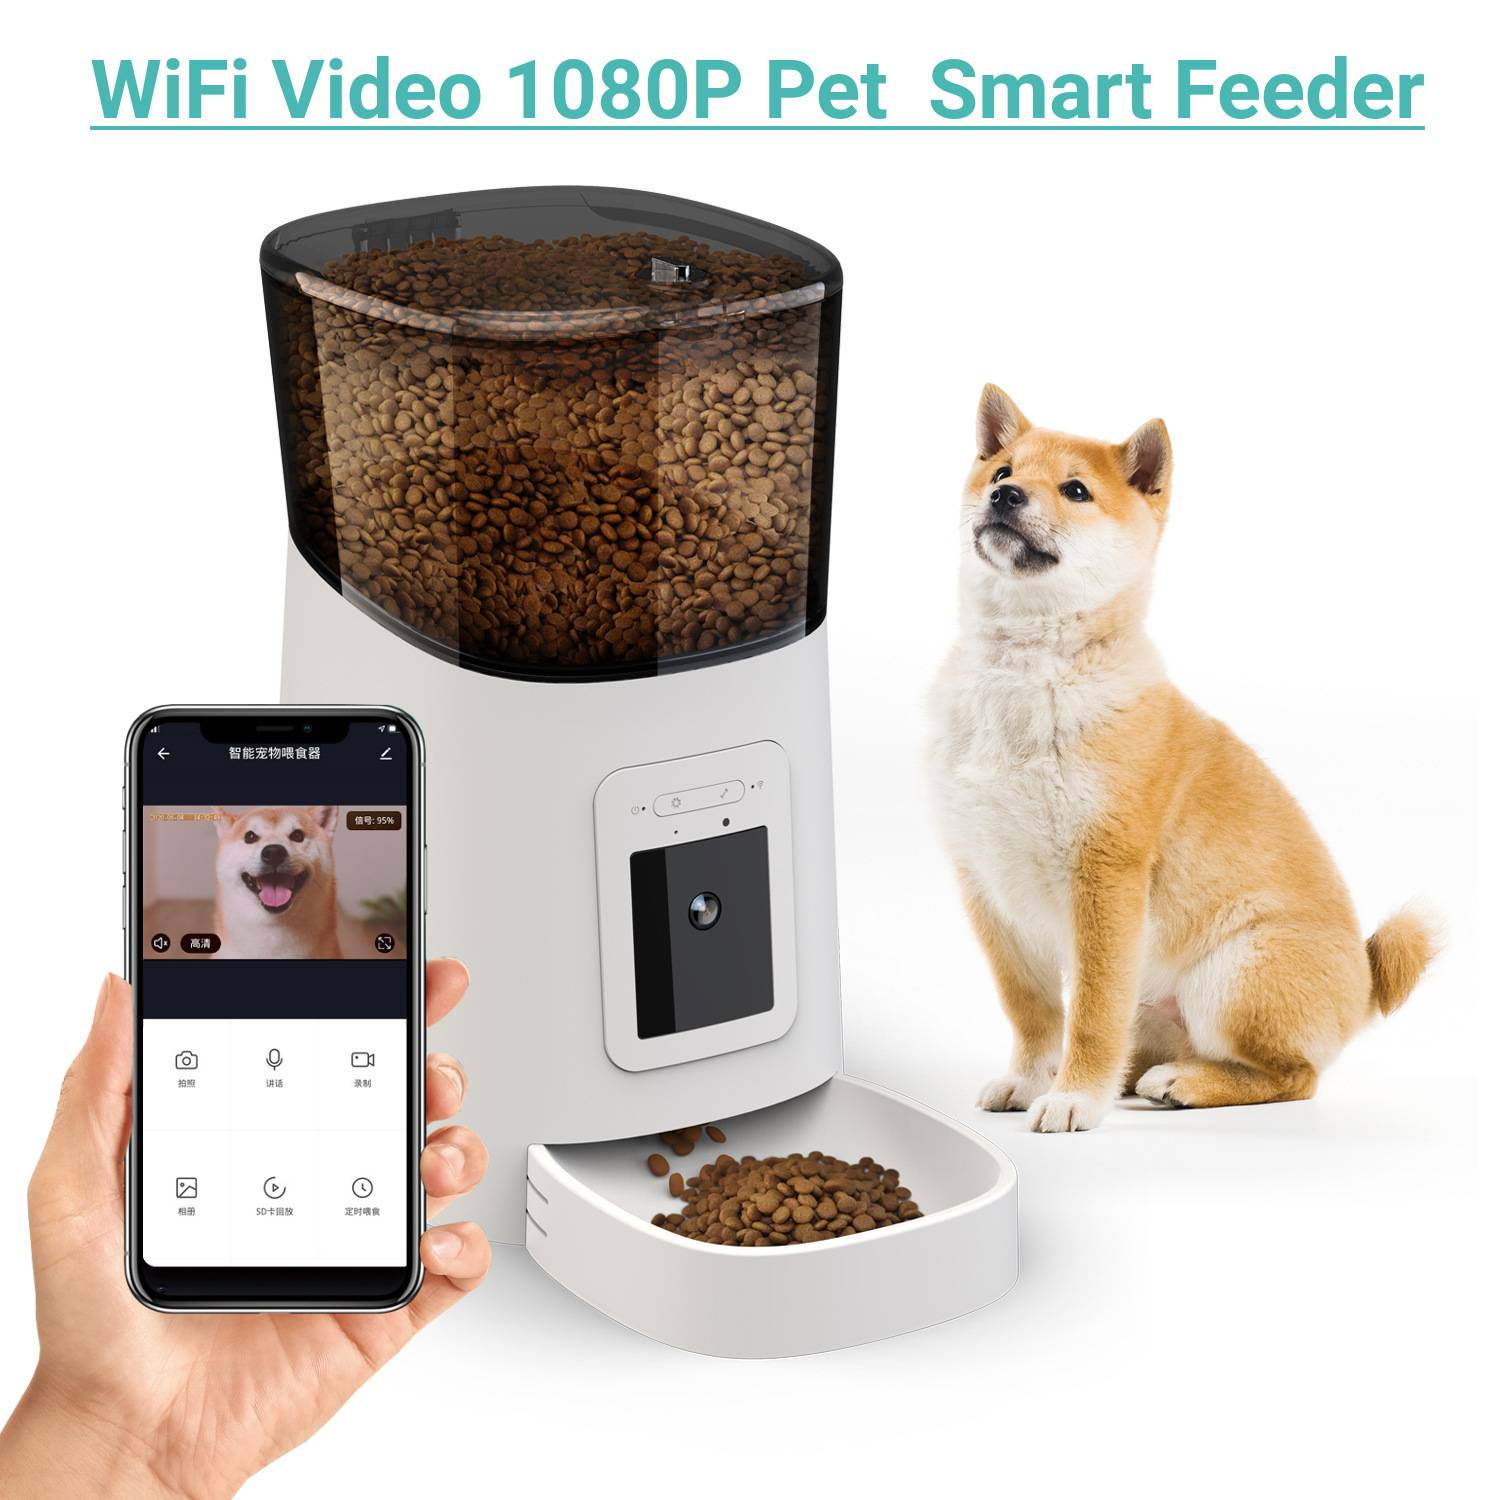 6L Smart Pet Feeder WiFi Video 1080P Automatic Food Dispenser For Cats and Dogs Travel Supply Auto Feeding Machine Dog Food Bowl